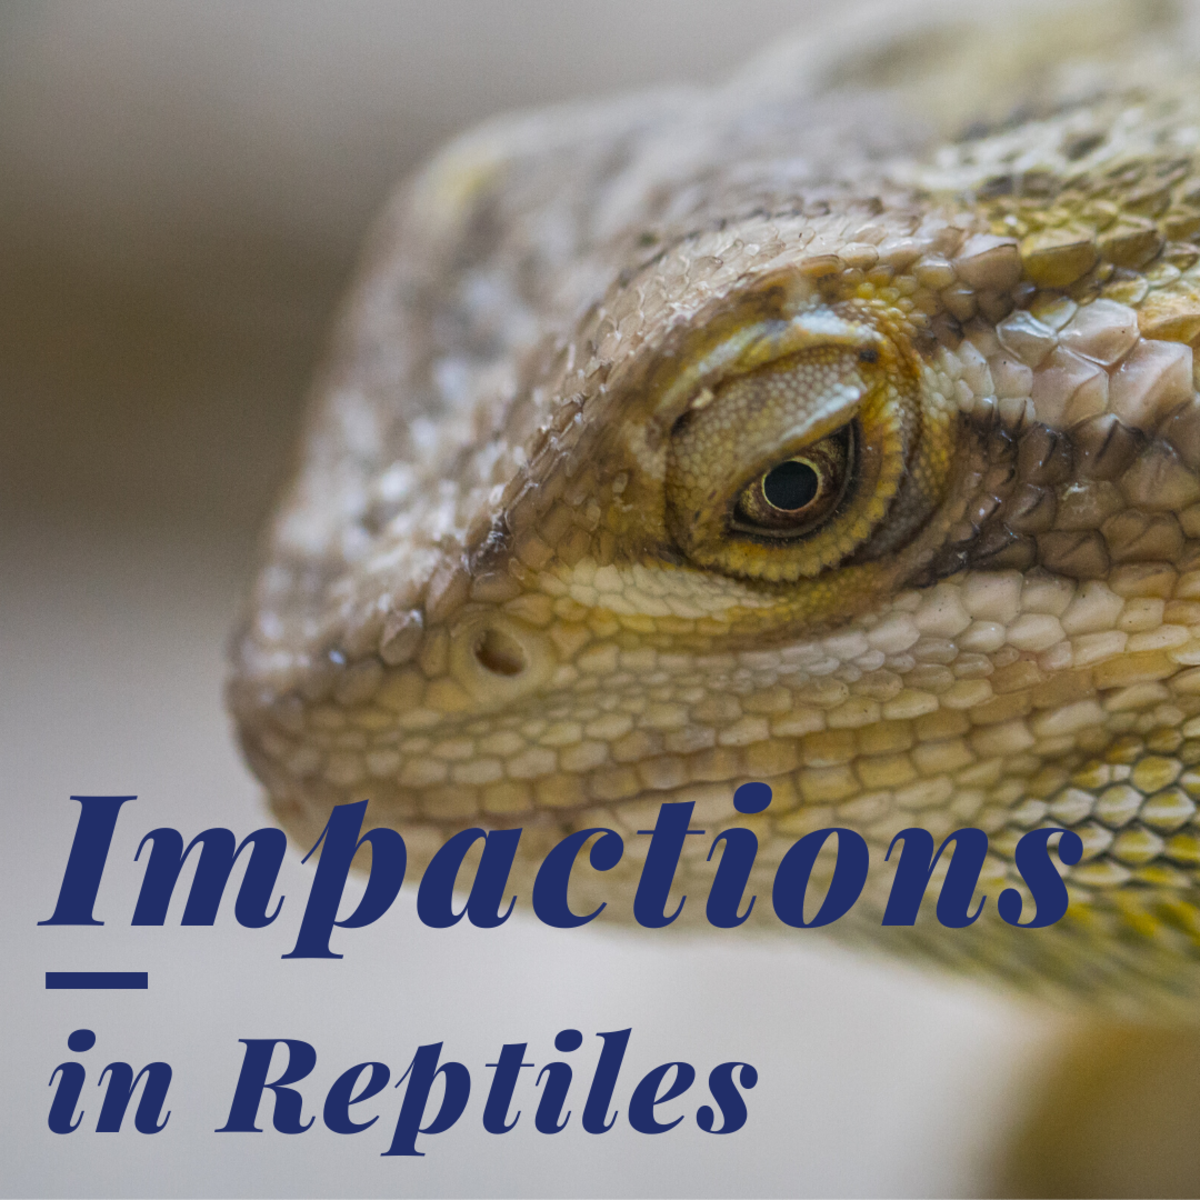 What Is an Impaction in Reptiles?